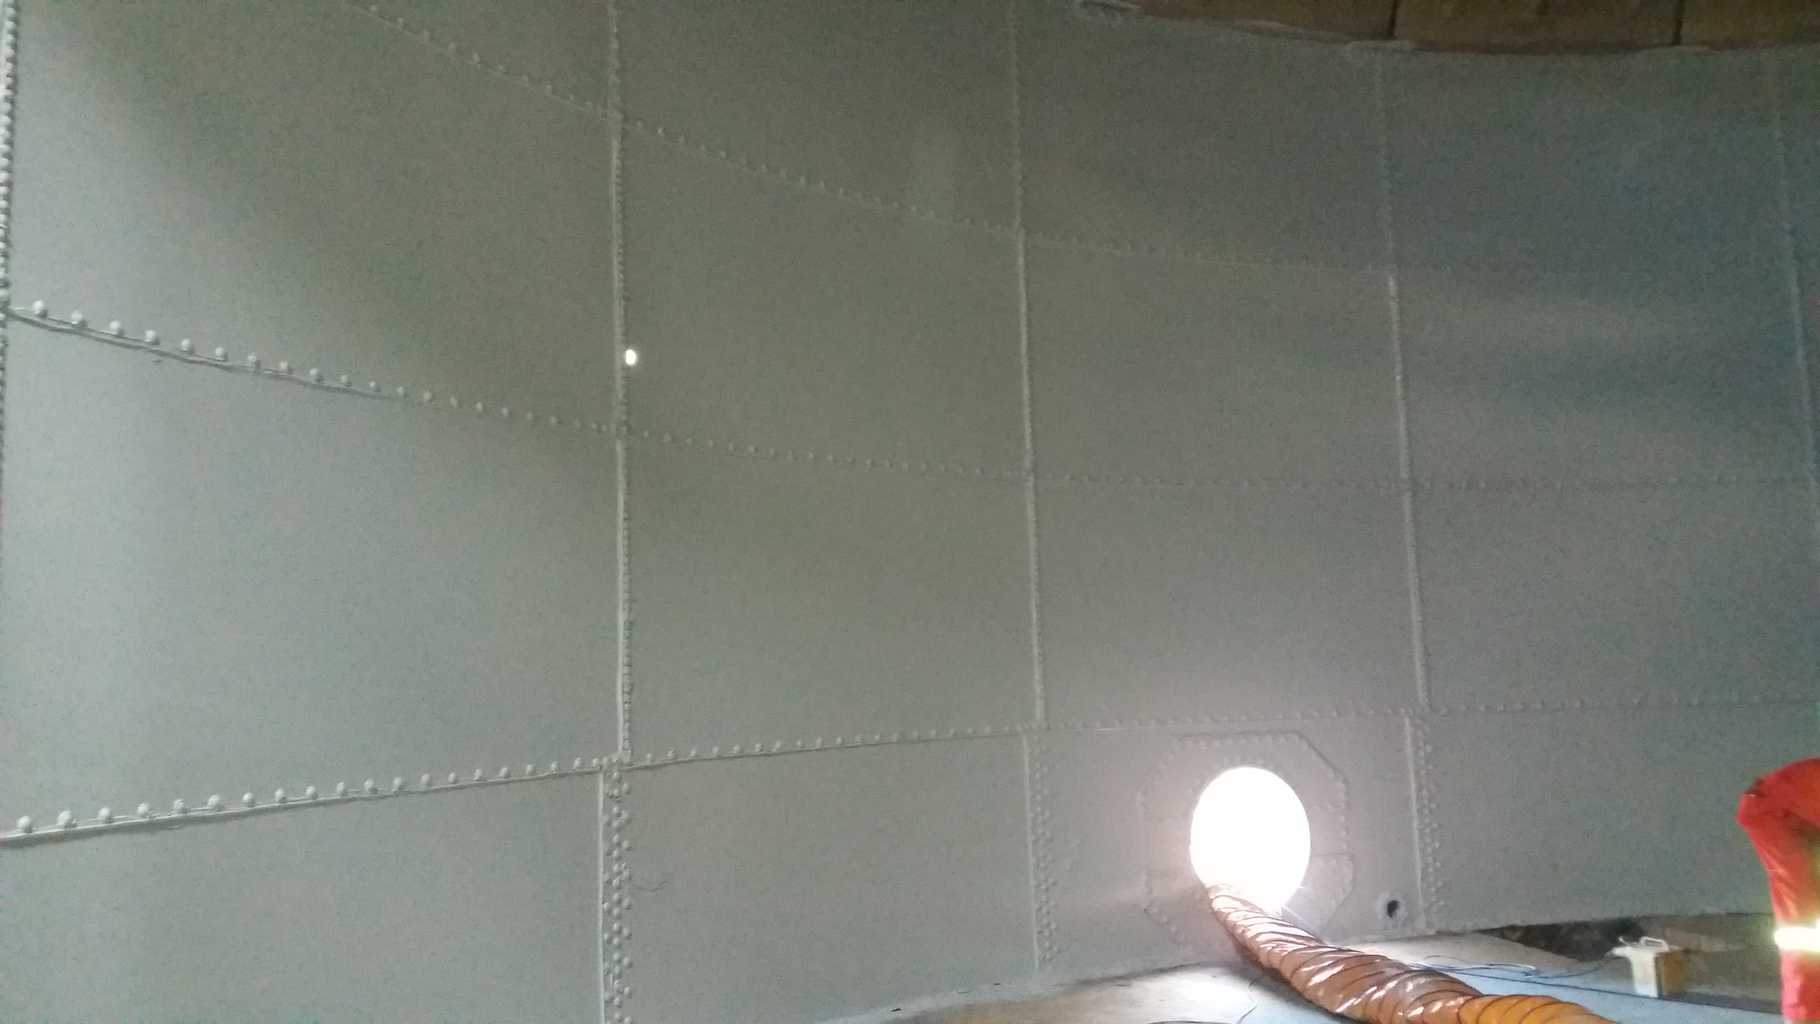 wastewater tank internal wall painted in white